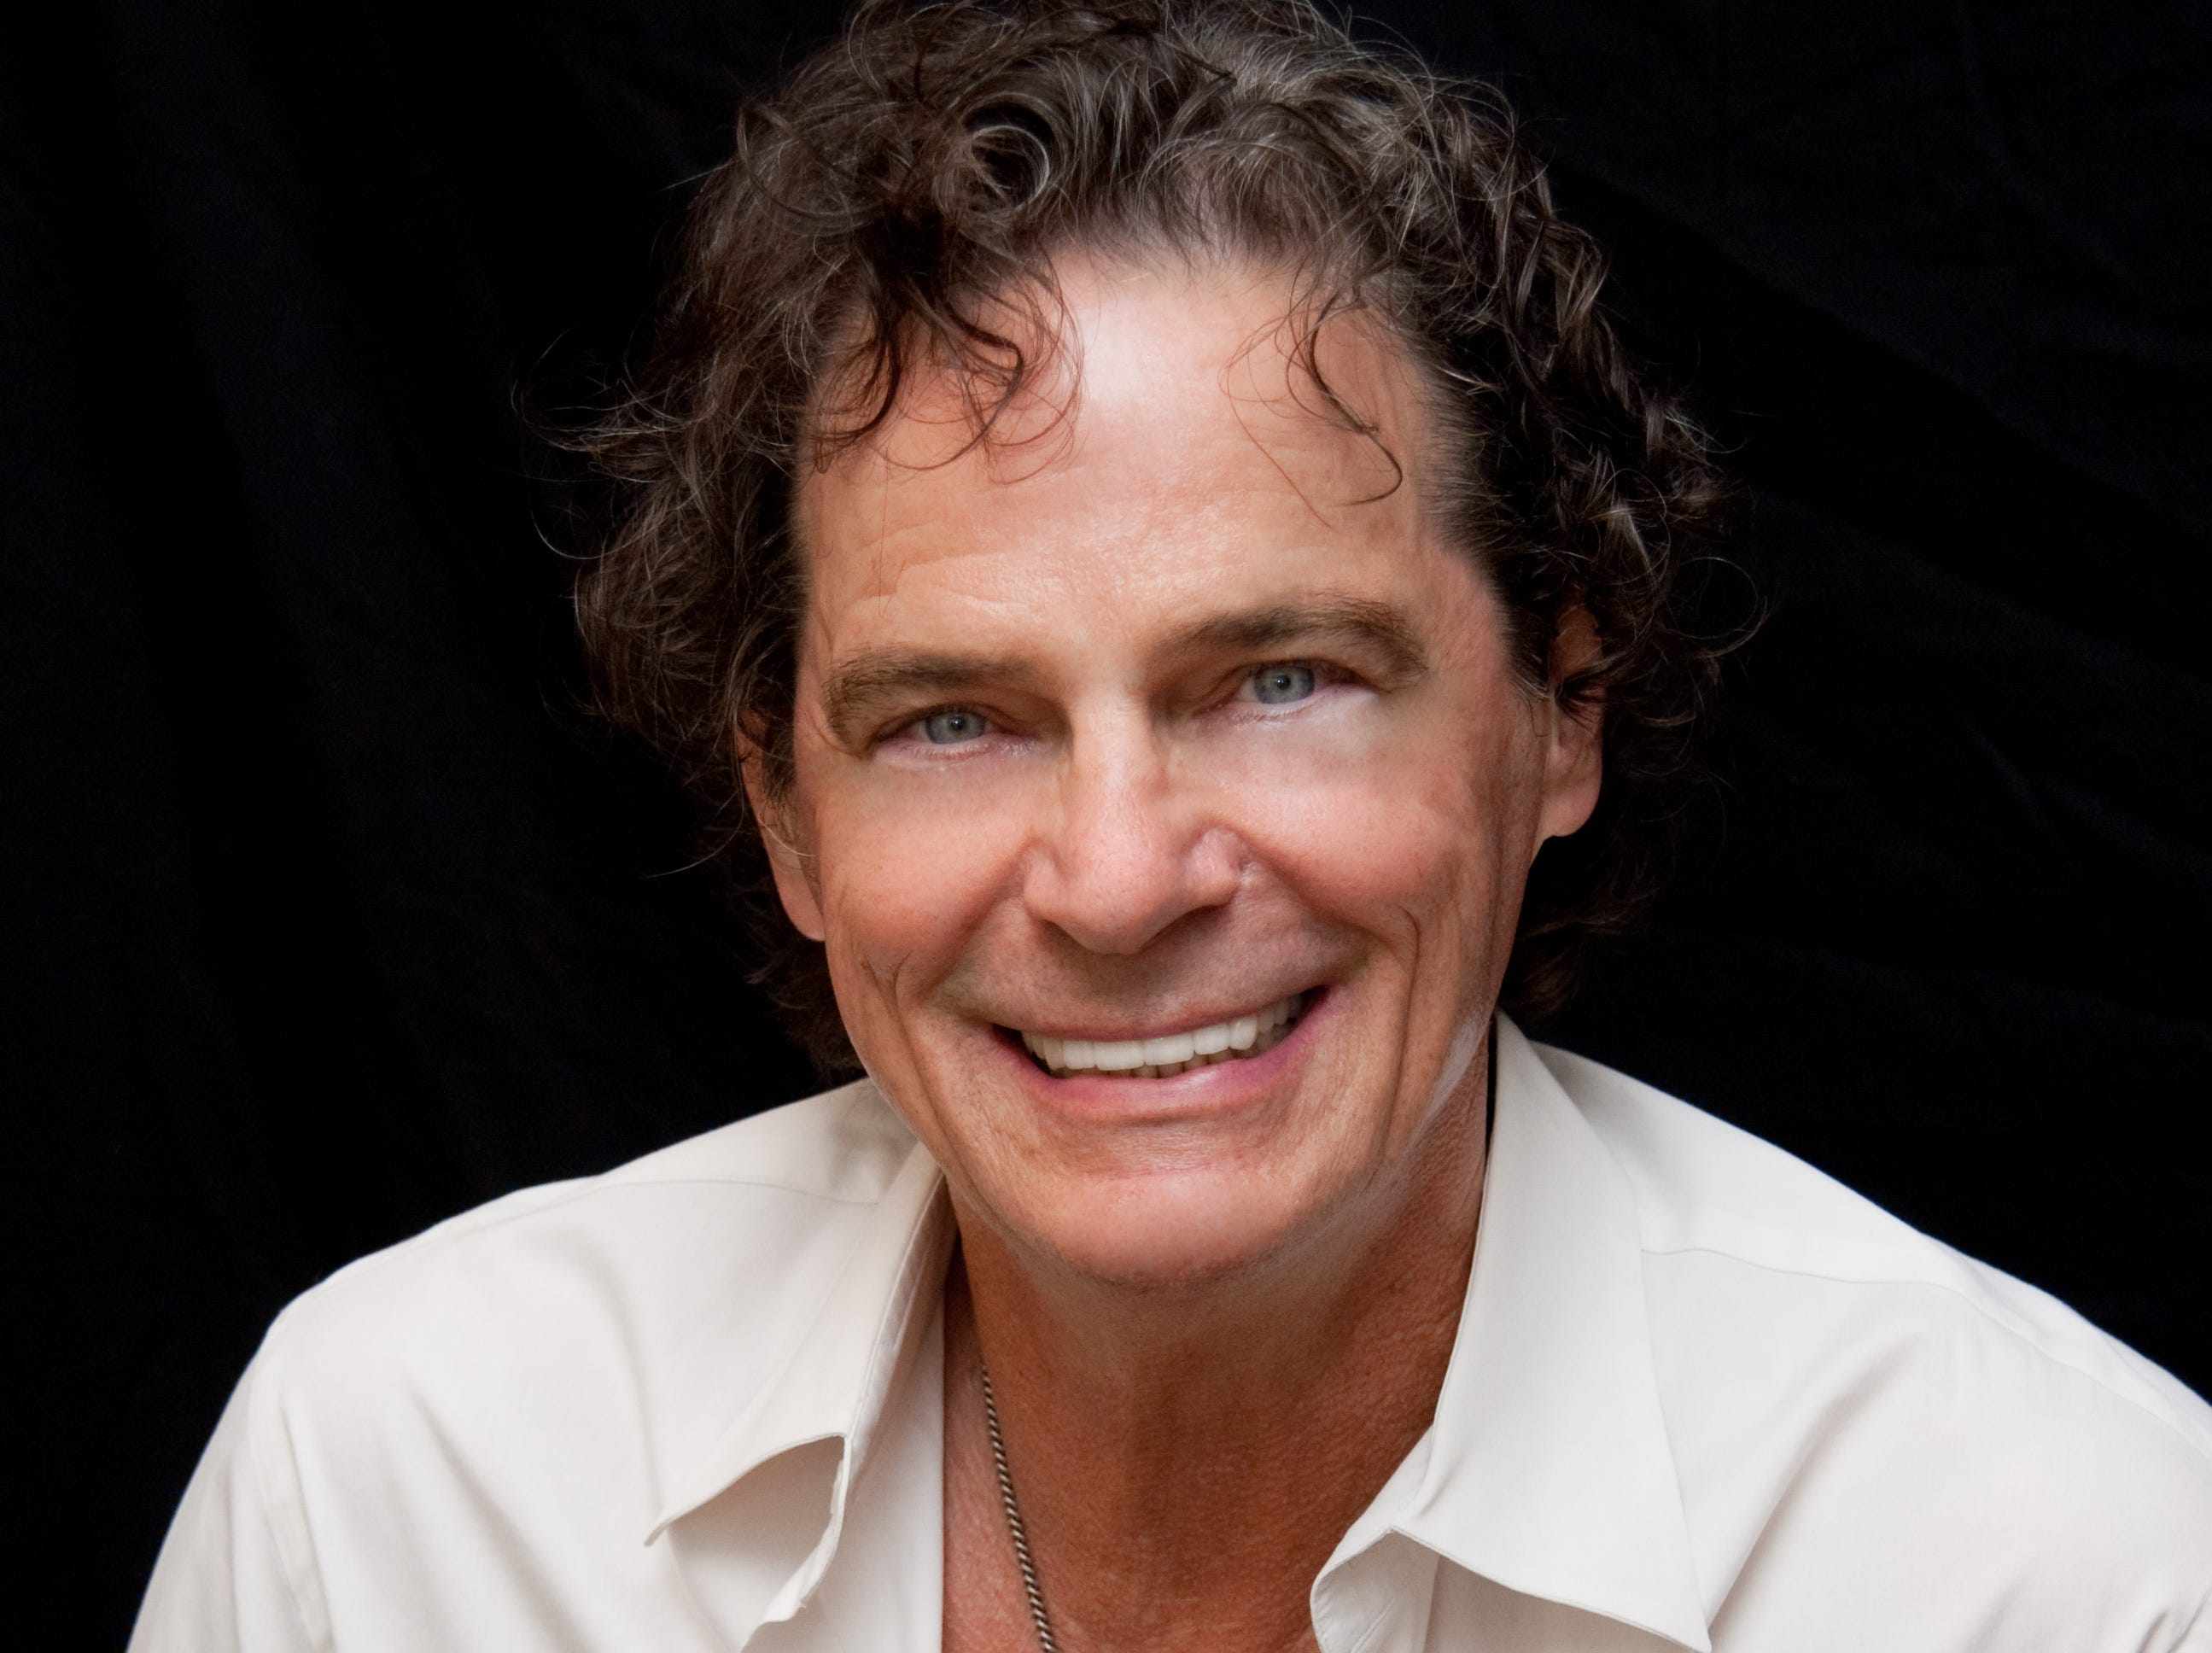 B.J. Thomas has never been tied down to one musical genre.